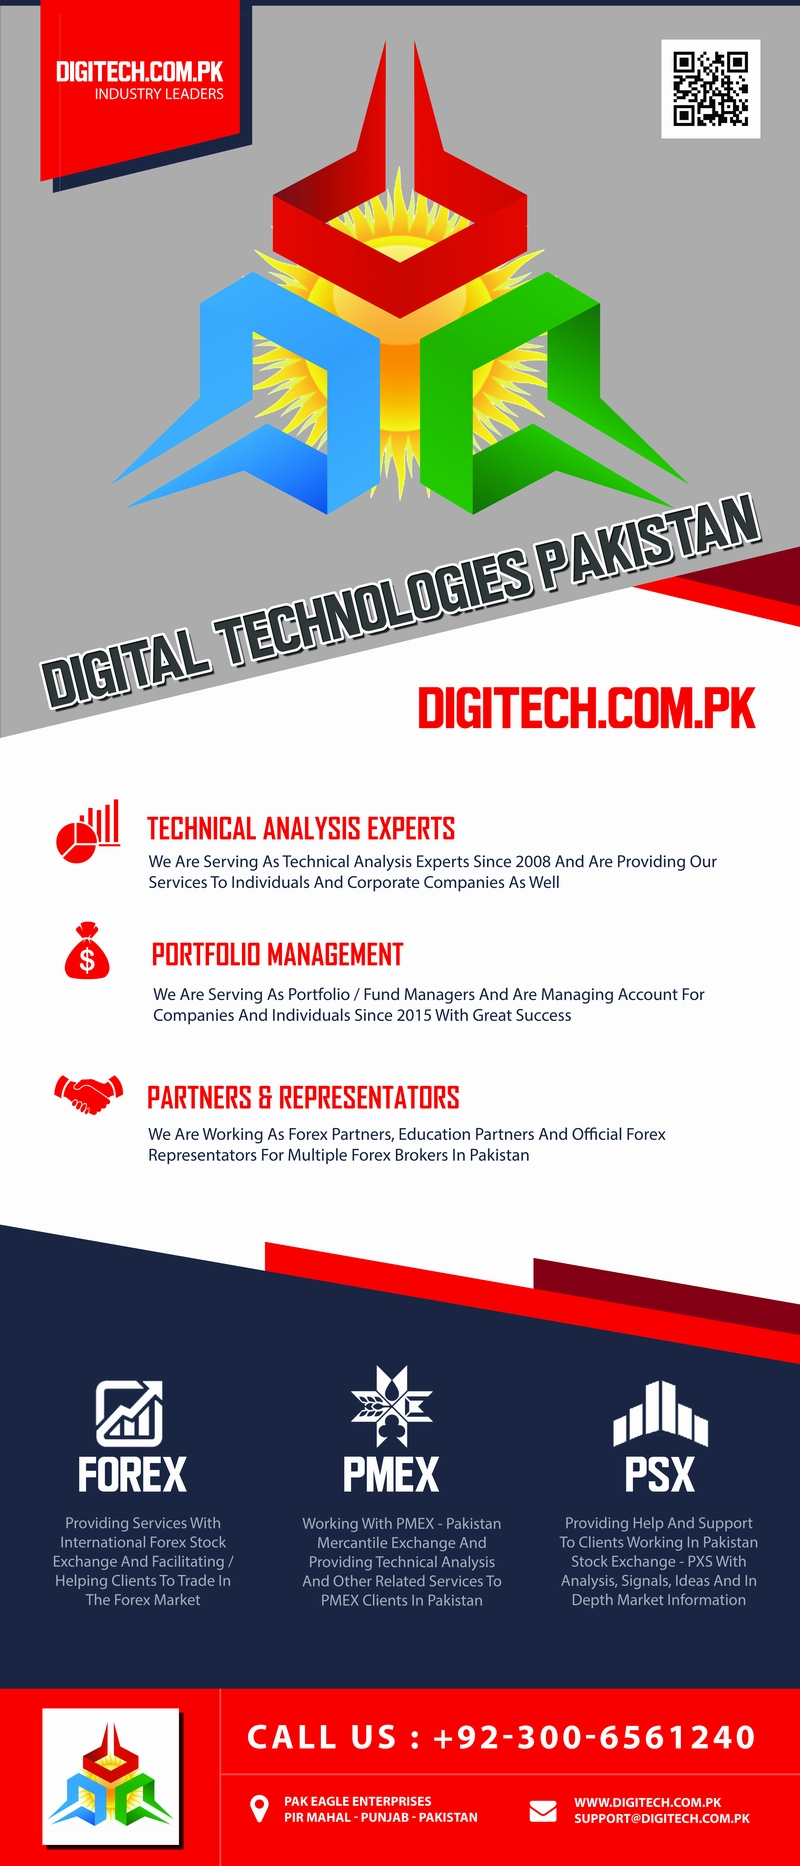 DigiTech.Com.Pk Roll Up Banner For Upcoming Forex Traders Seminar And Meetups